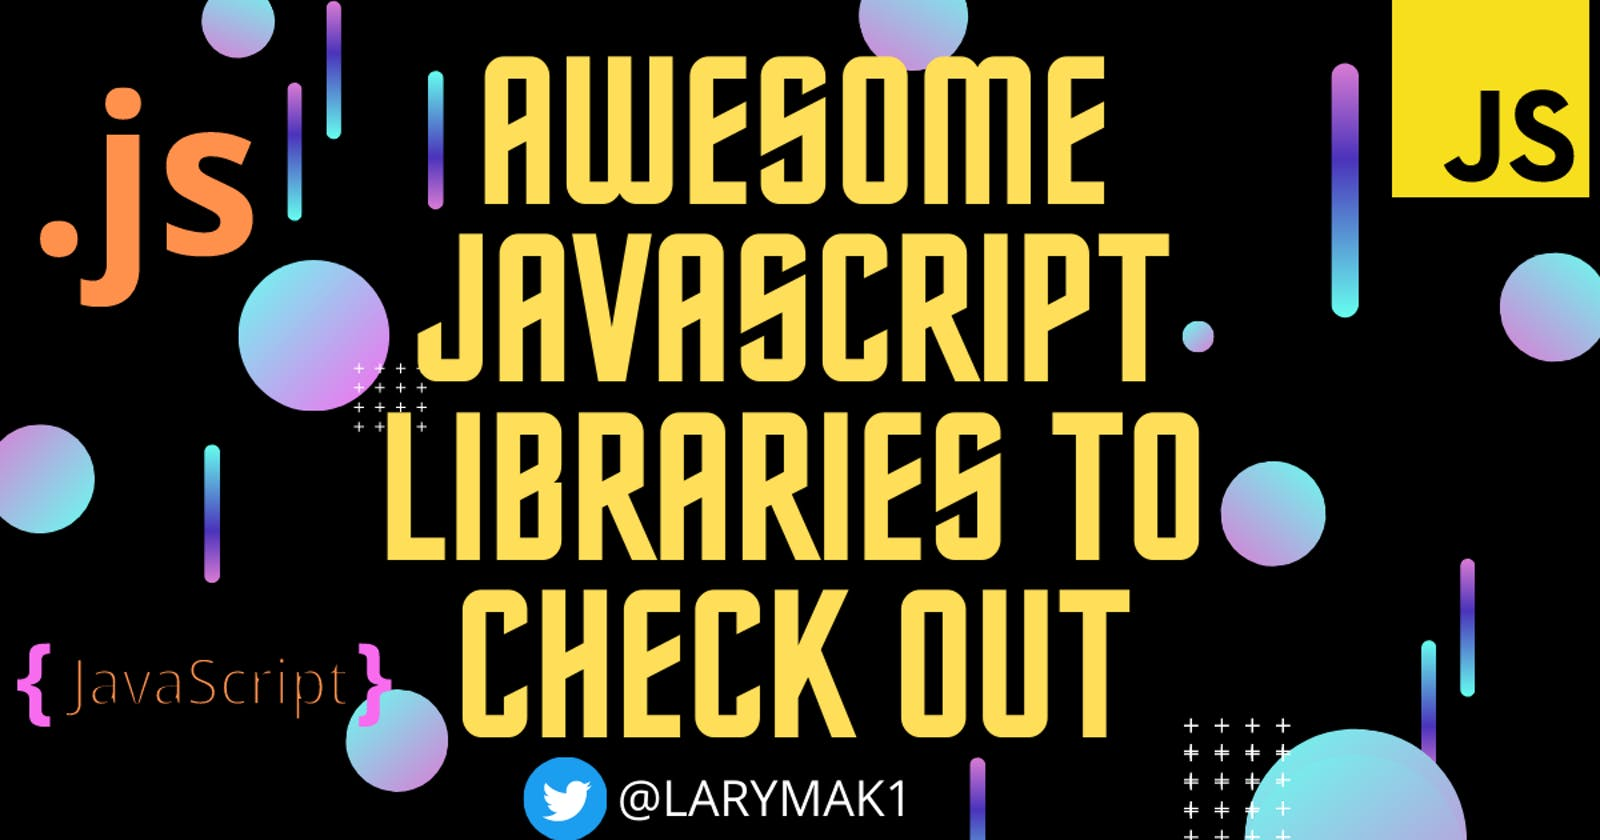 Awesome JavaScript Animation Libraries To Check Out.